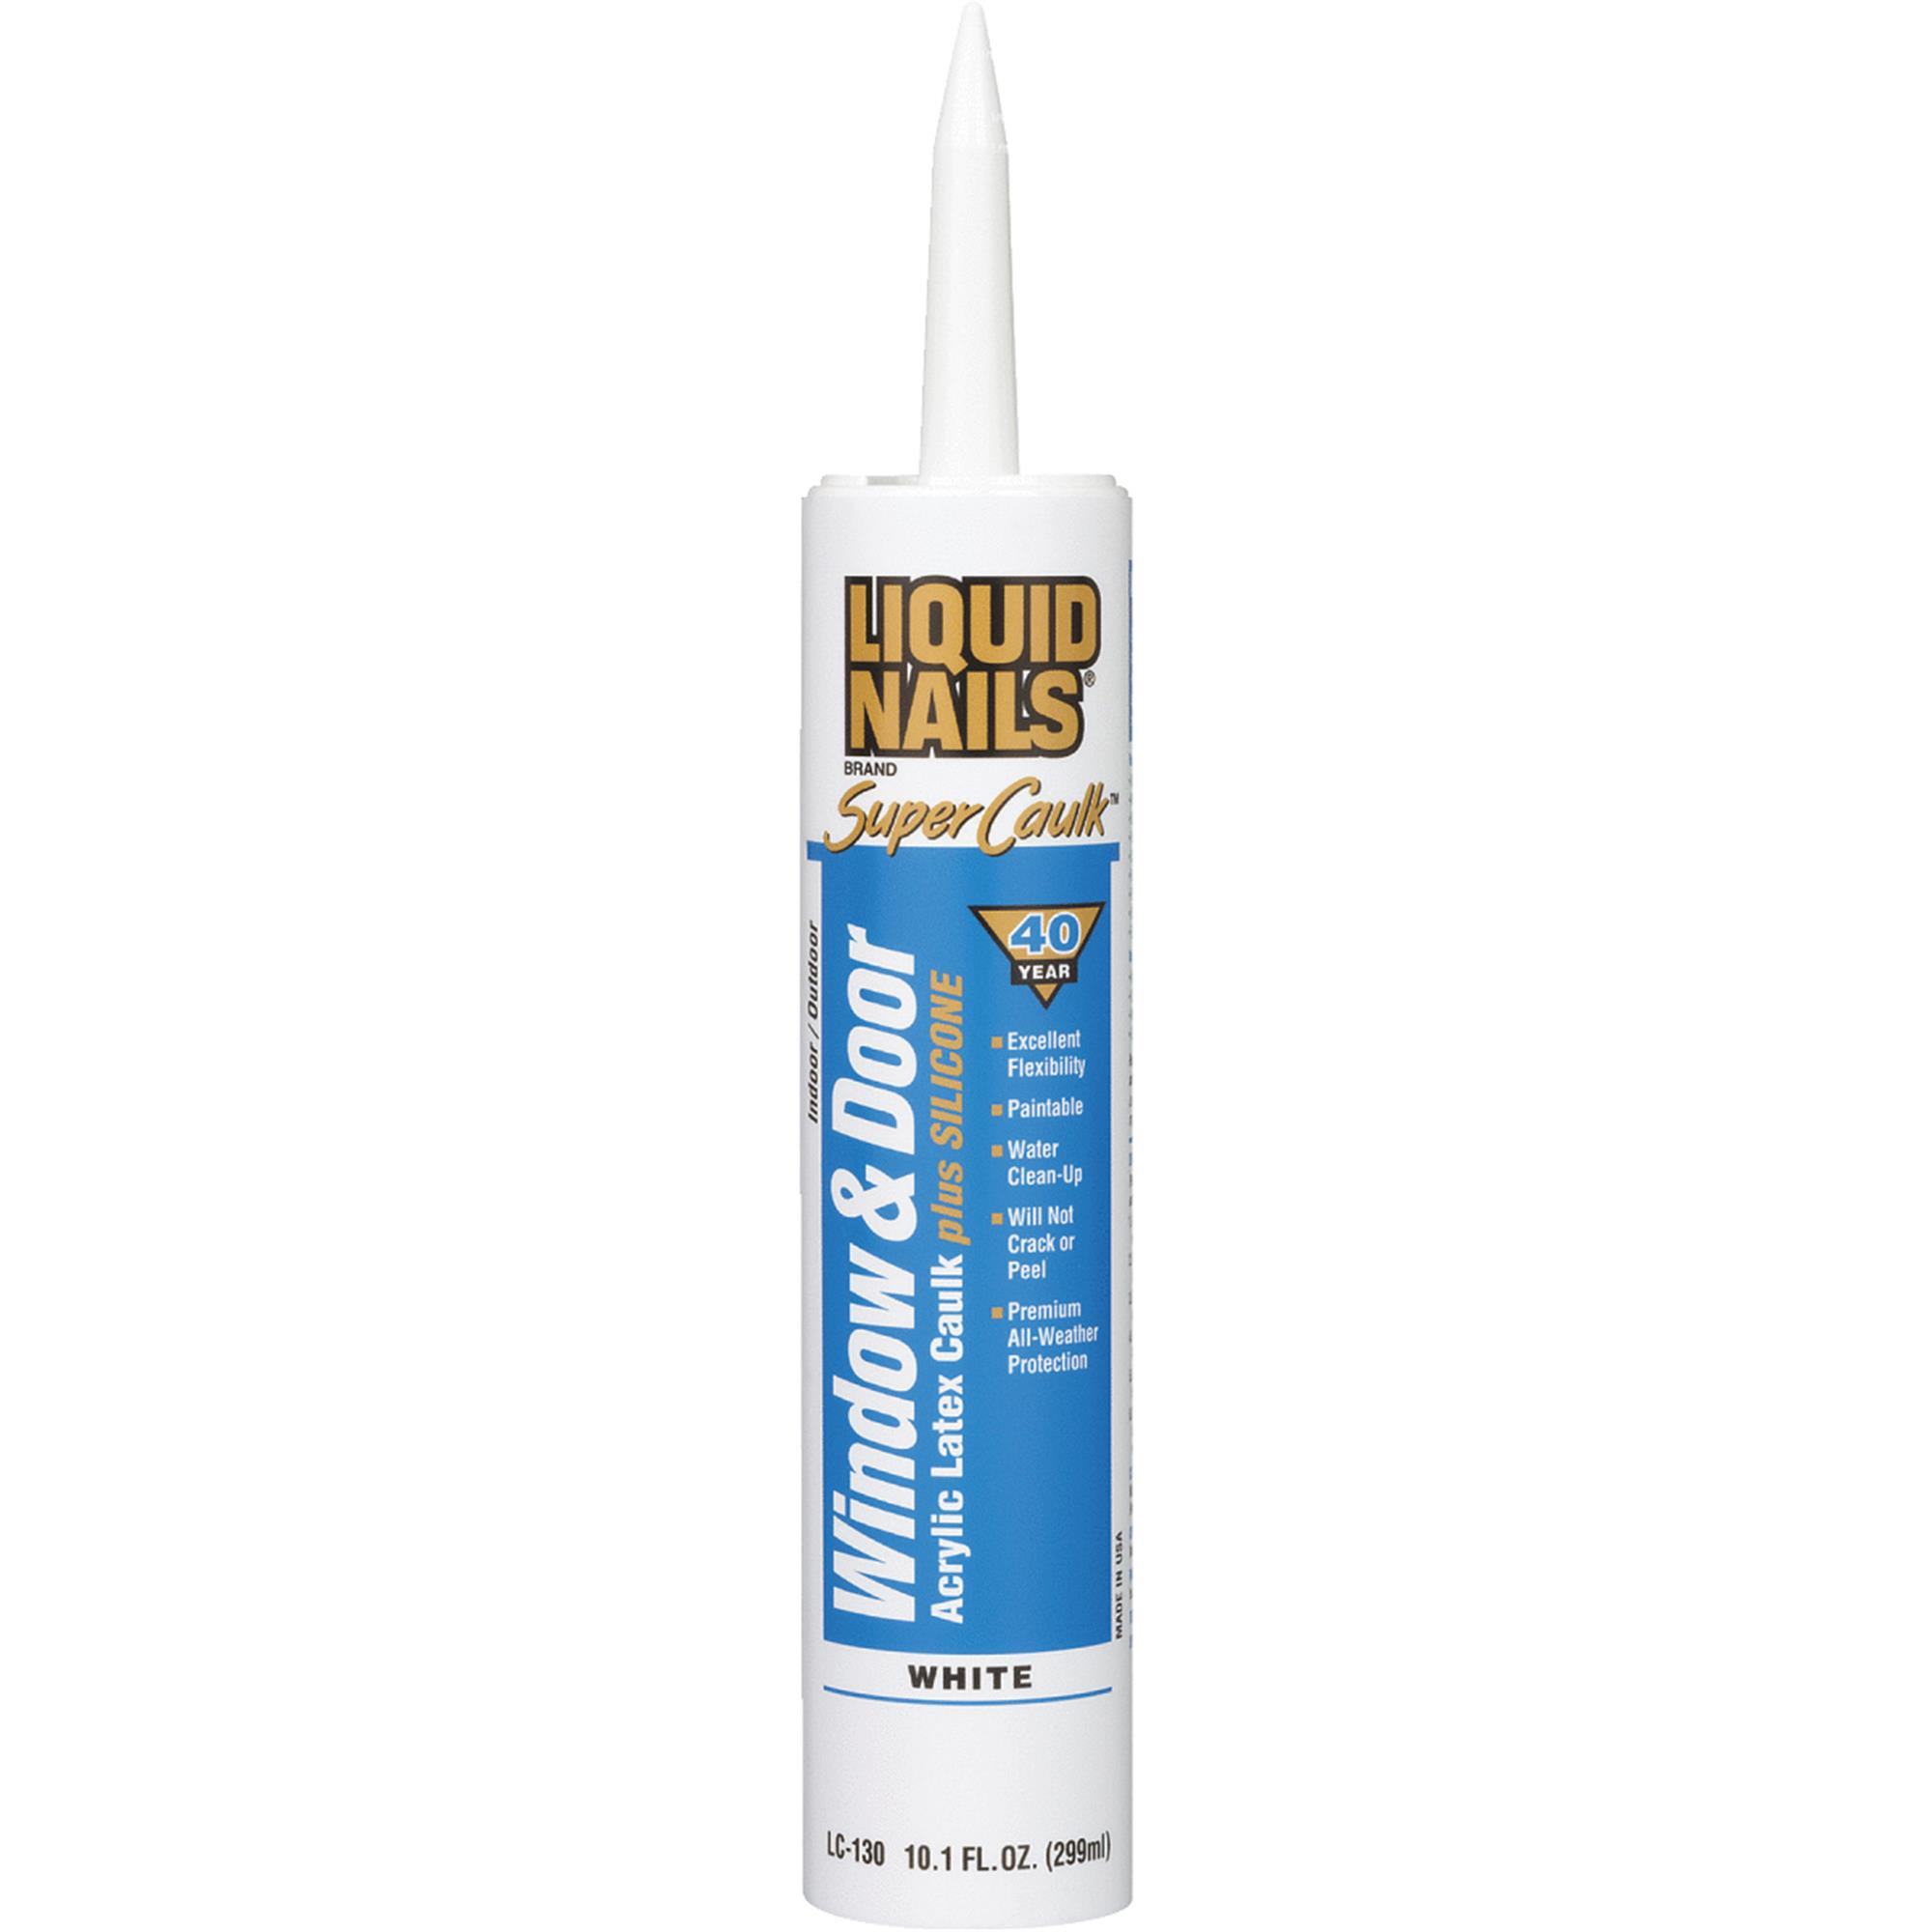 Amazing LIQUID NAILS Super Caulk Window & Door Acrylic Latex Caulk Plus Silicone For Your Plan - Minimalist siliconized acrylic caulk Minimalist